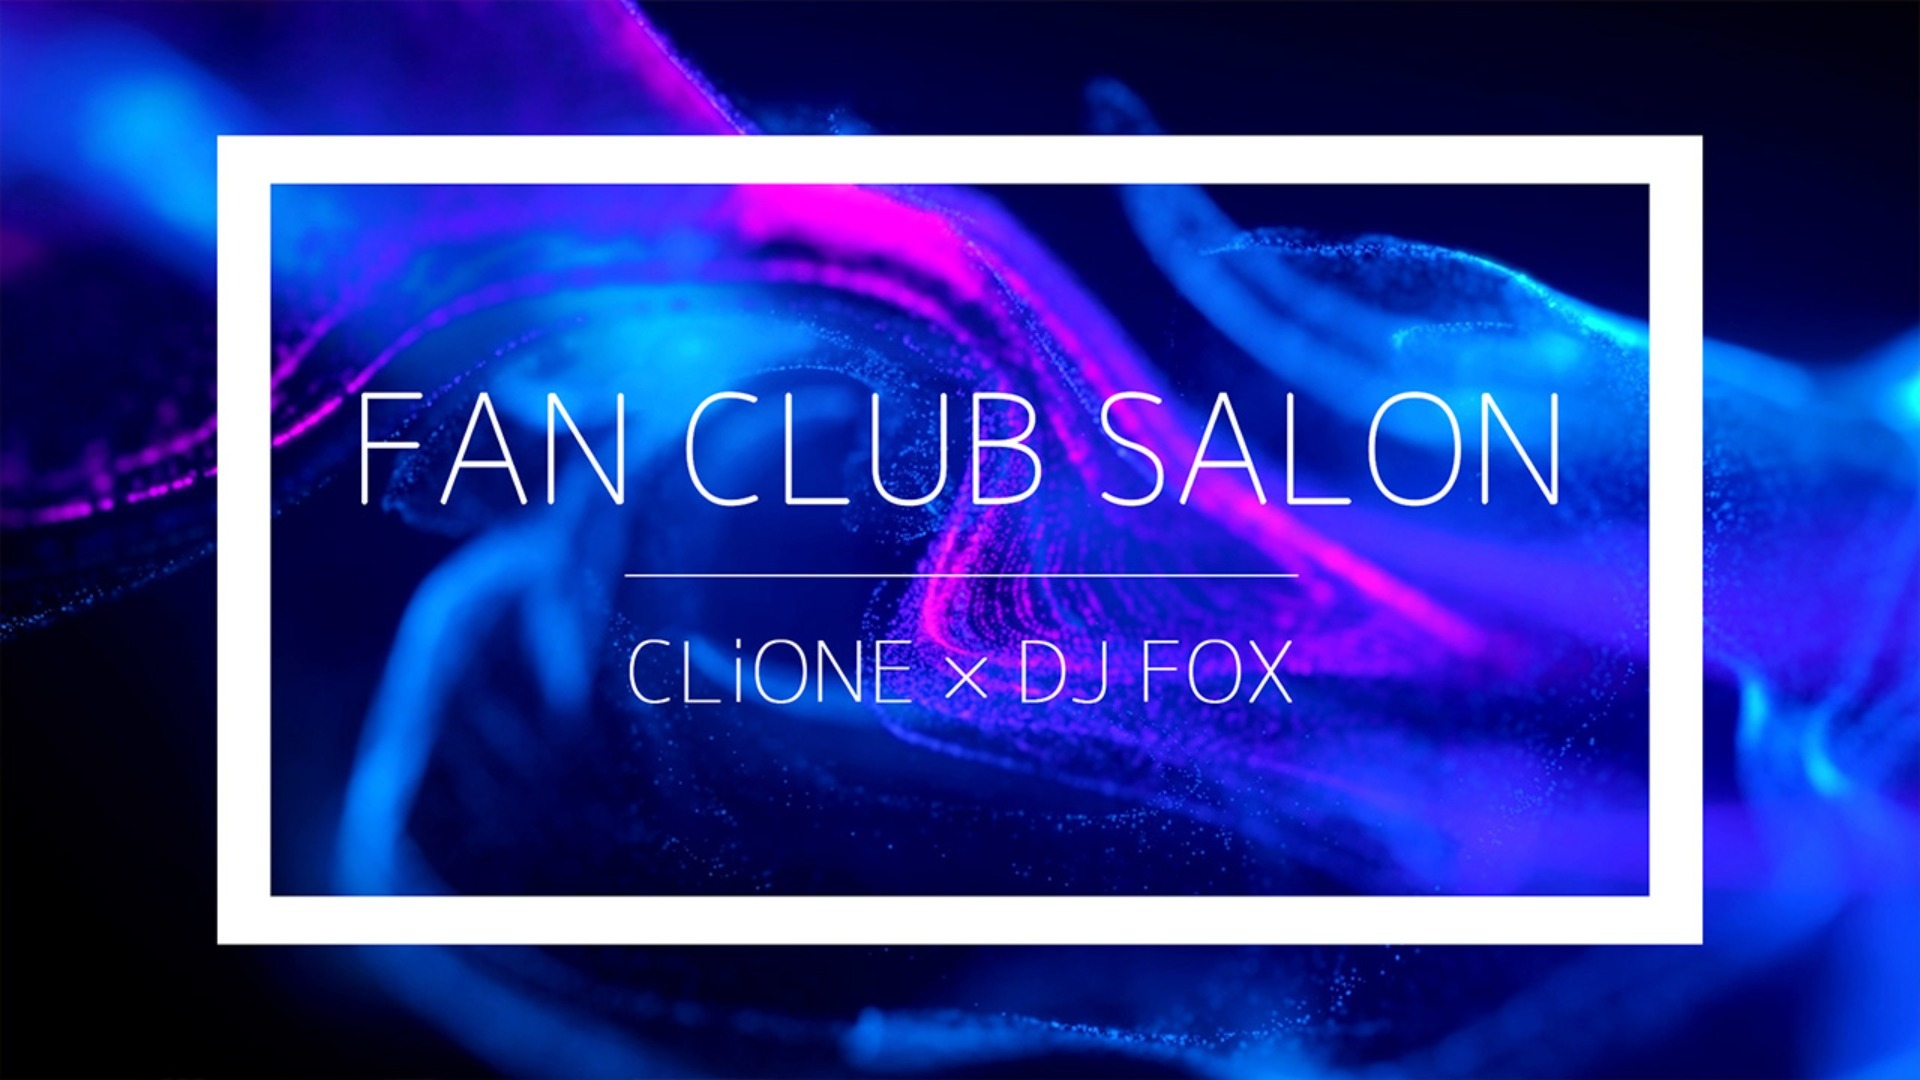 CLiONEとキツネDJの「FAN CLUB SALON」